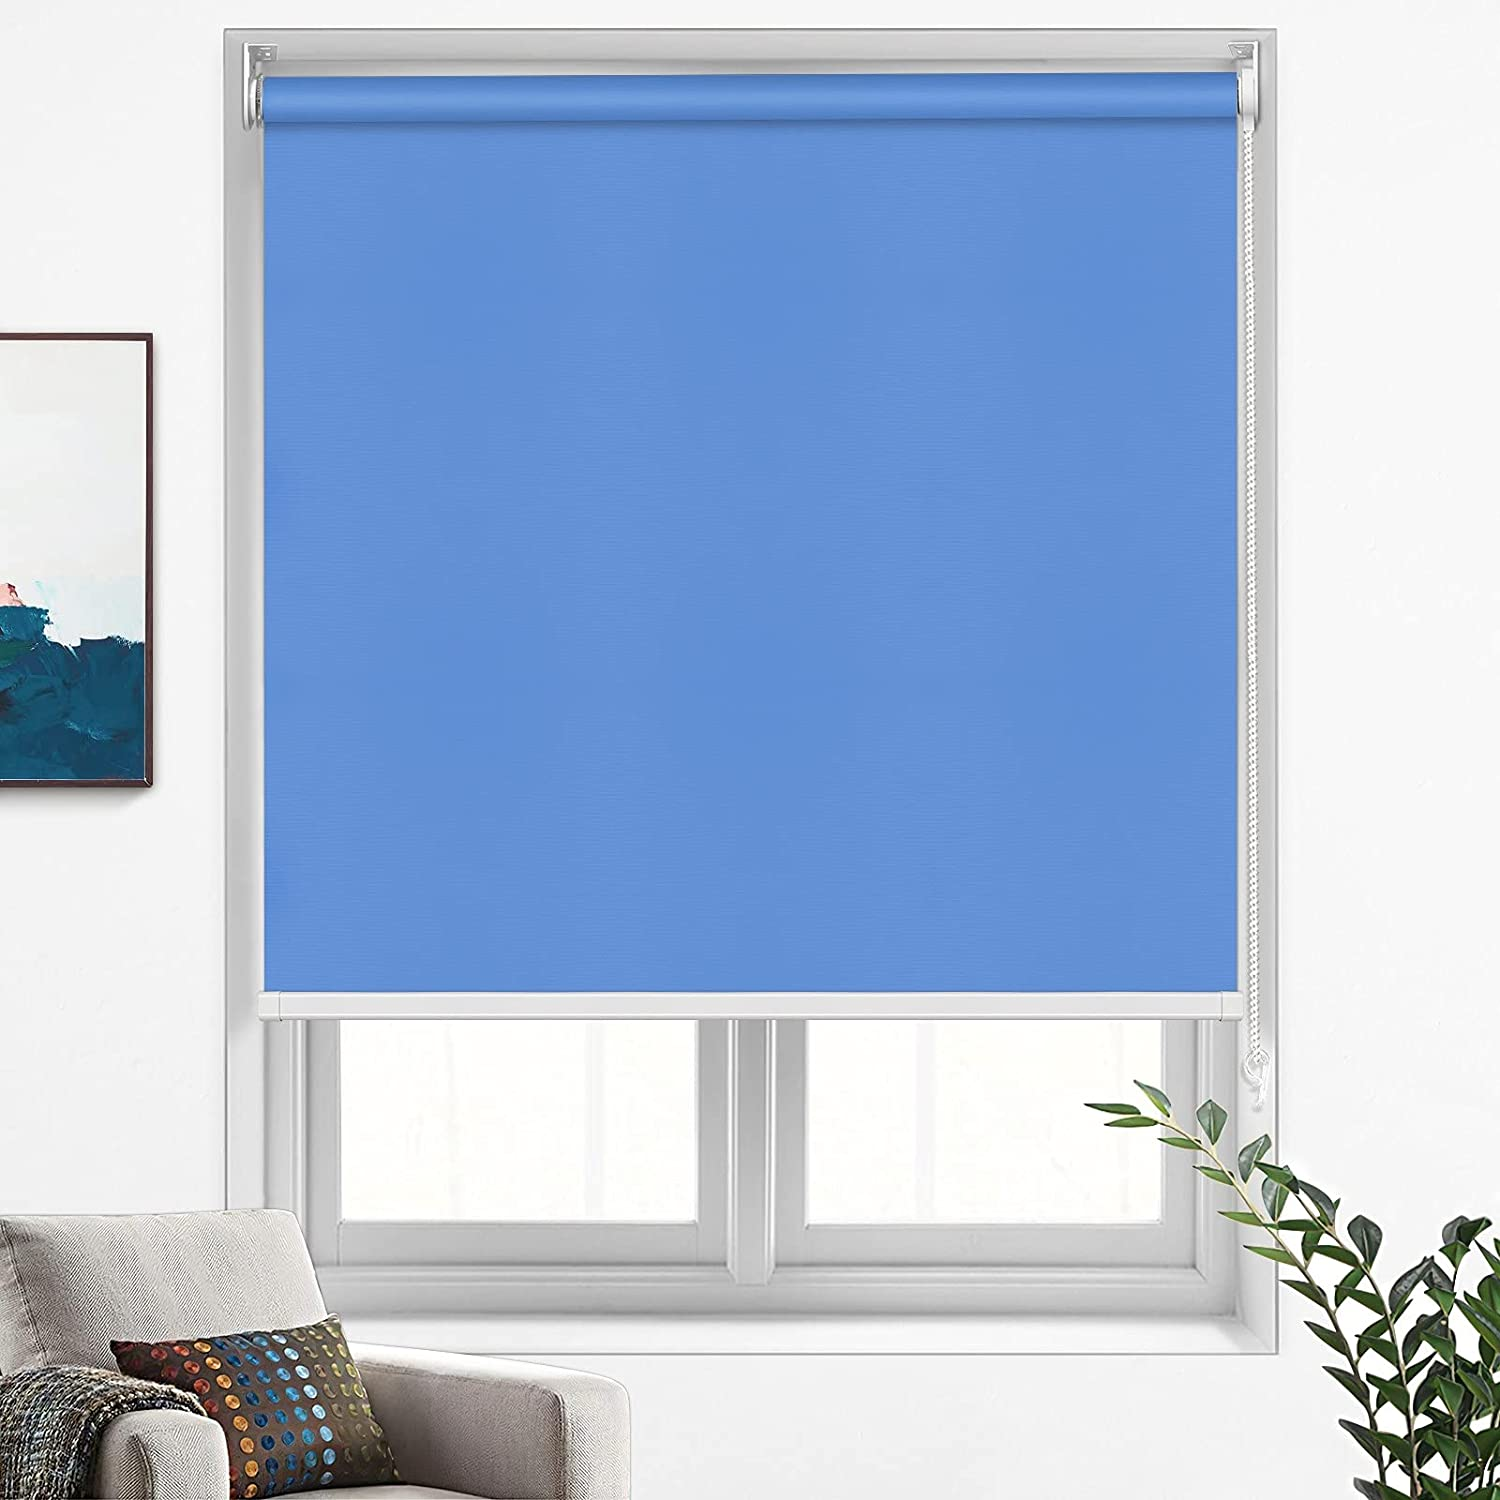 MiLin Blackout Roller San Jose Mall Shades Window Indefinitely Blinds Cu Custom and